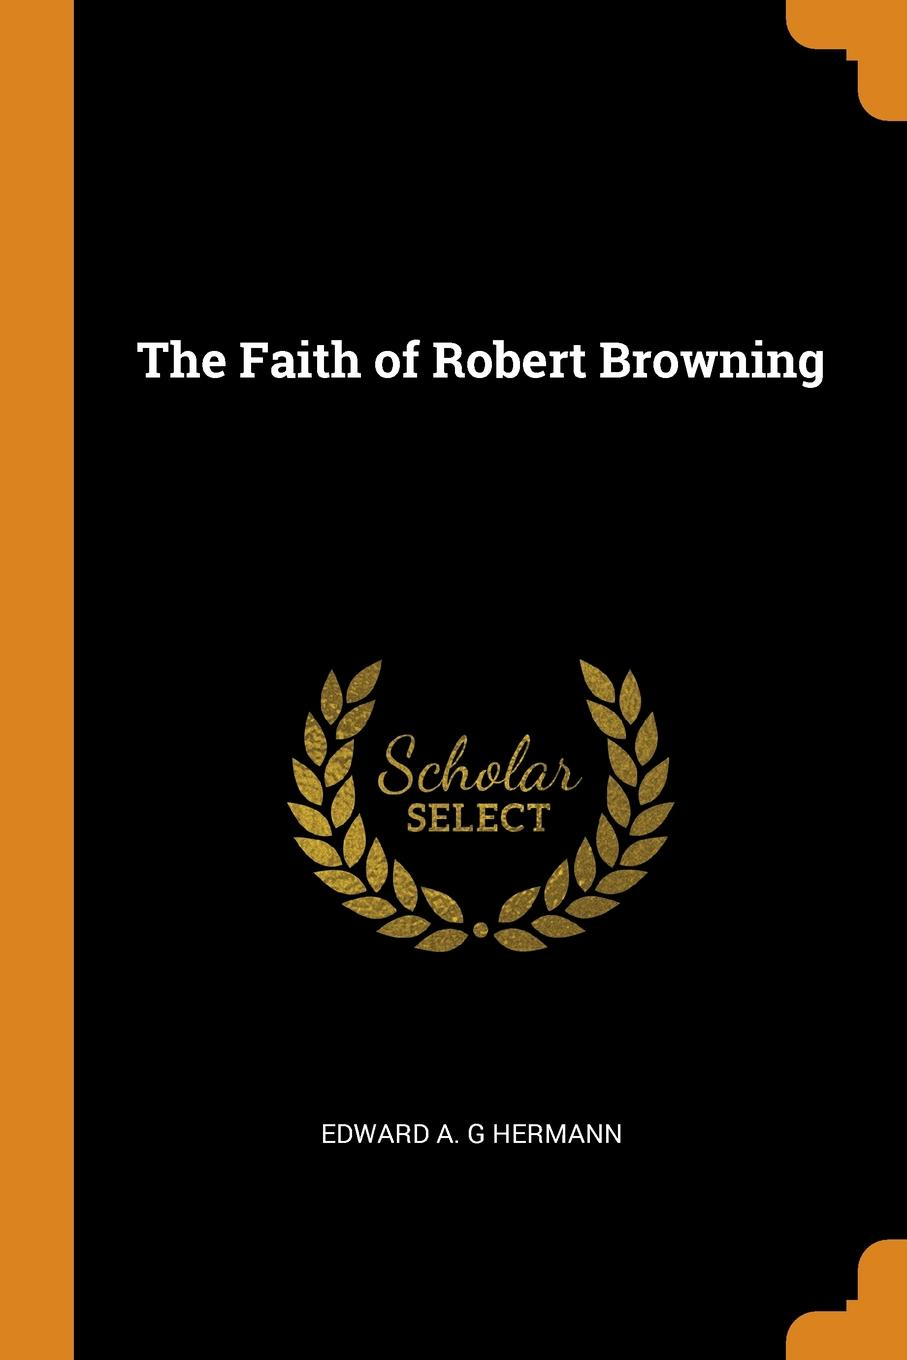 The Faith of Robert Browning